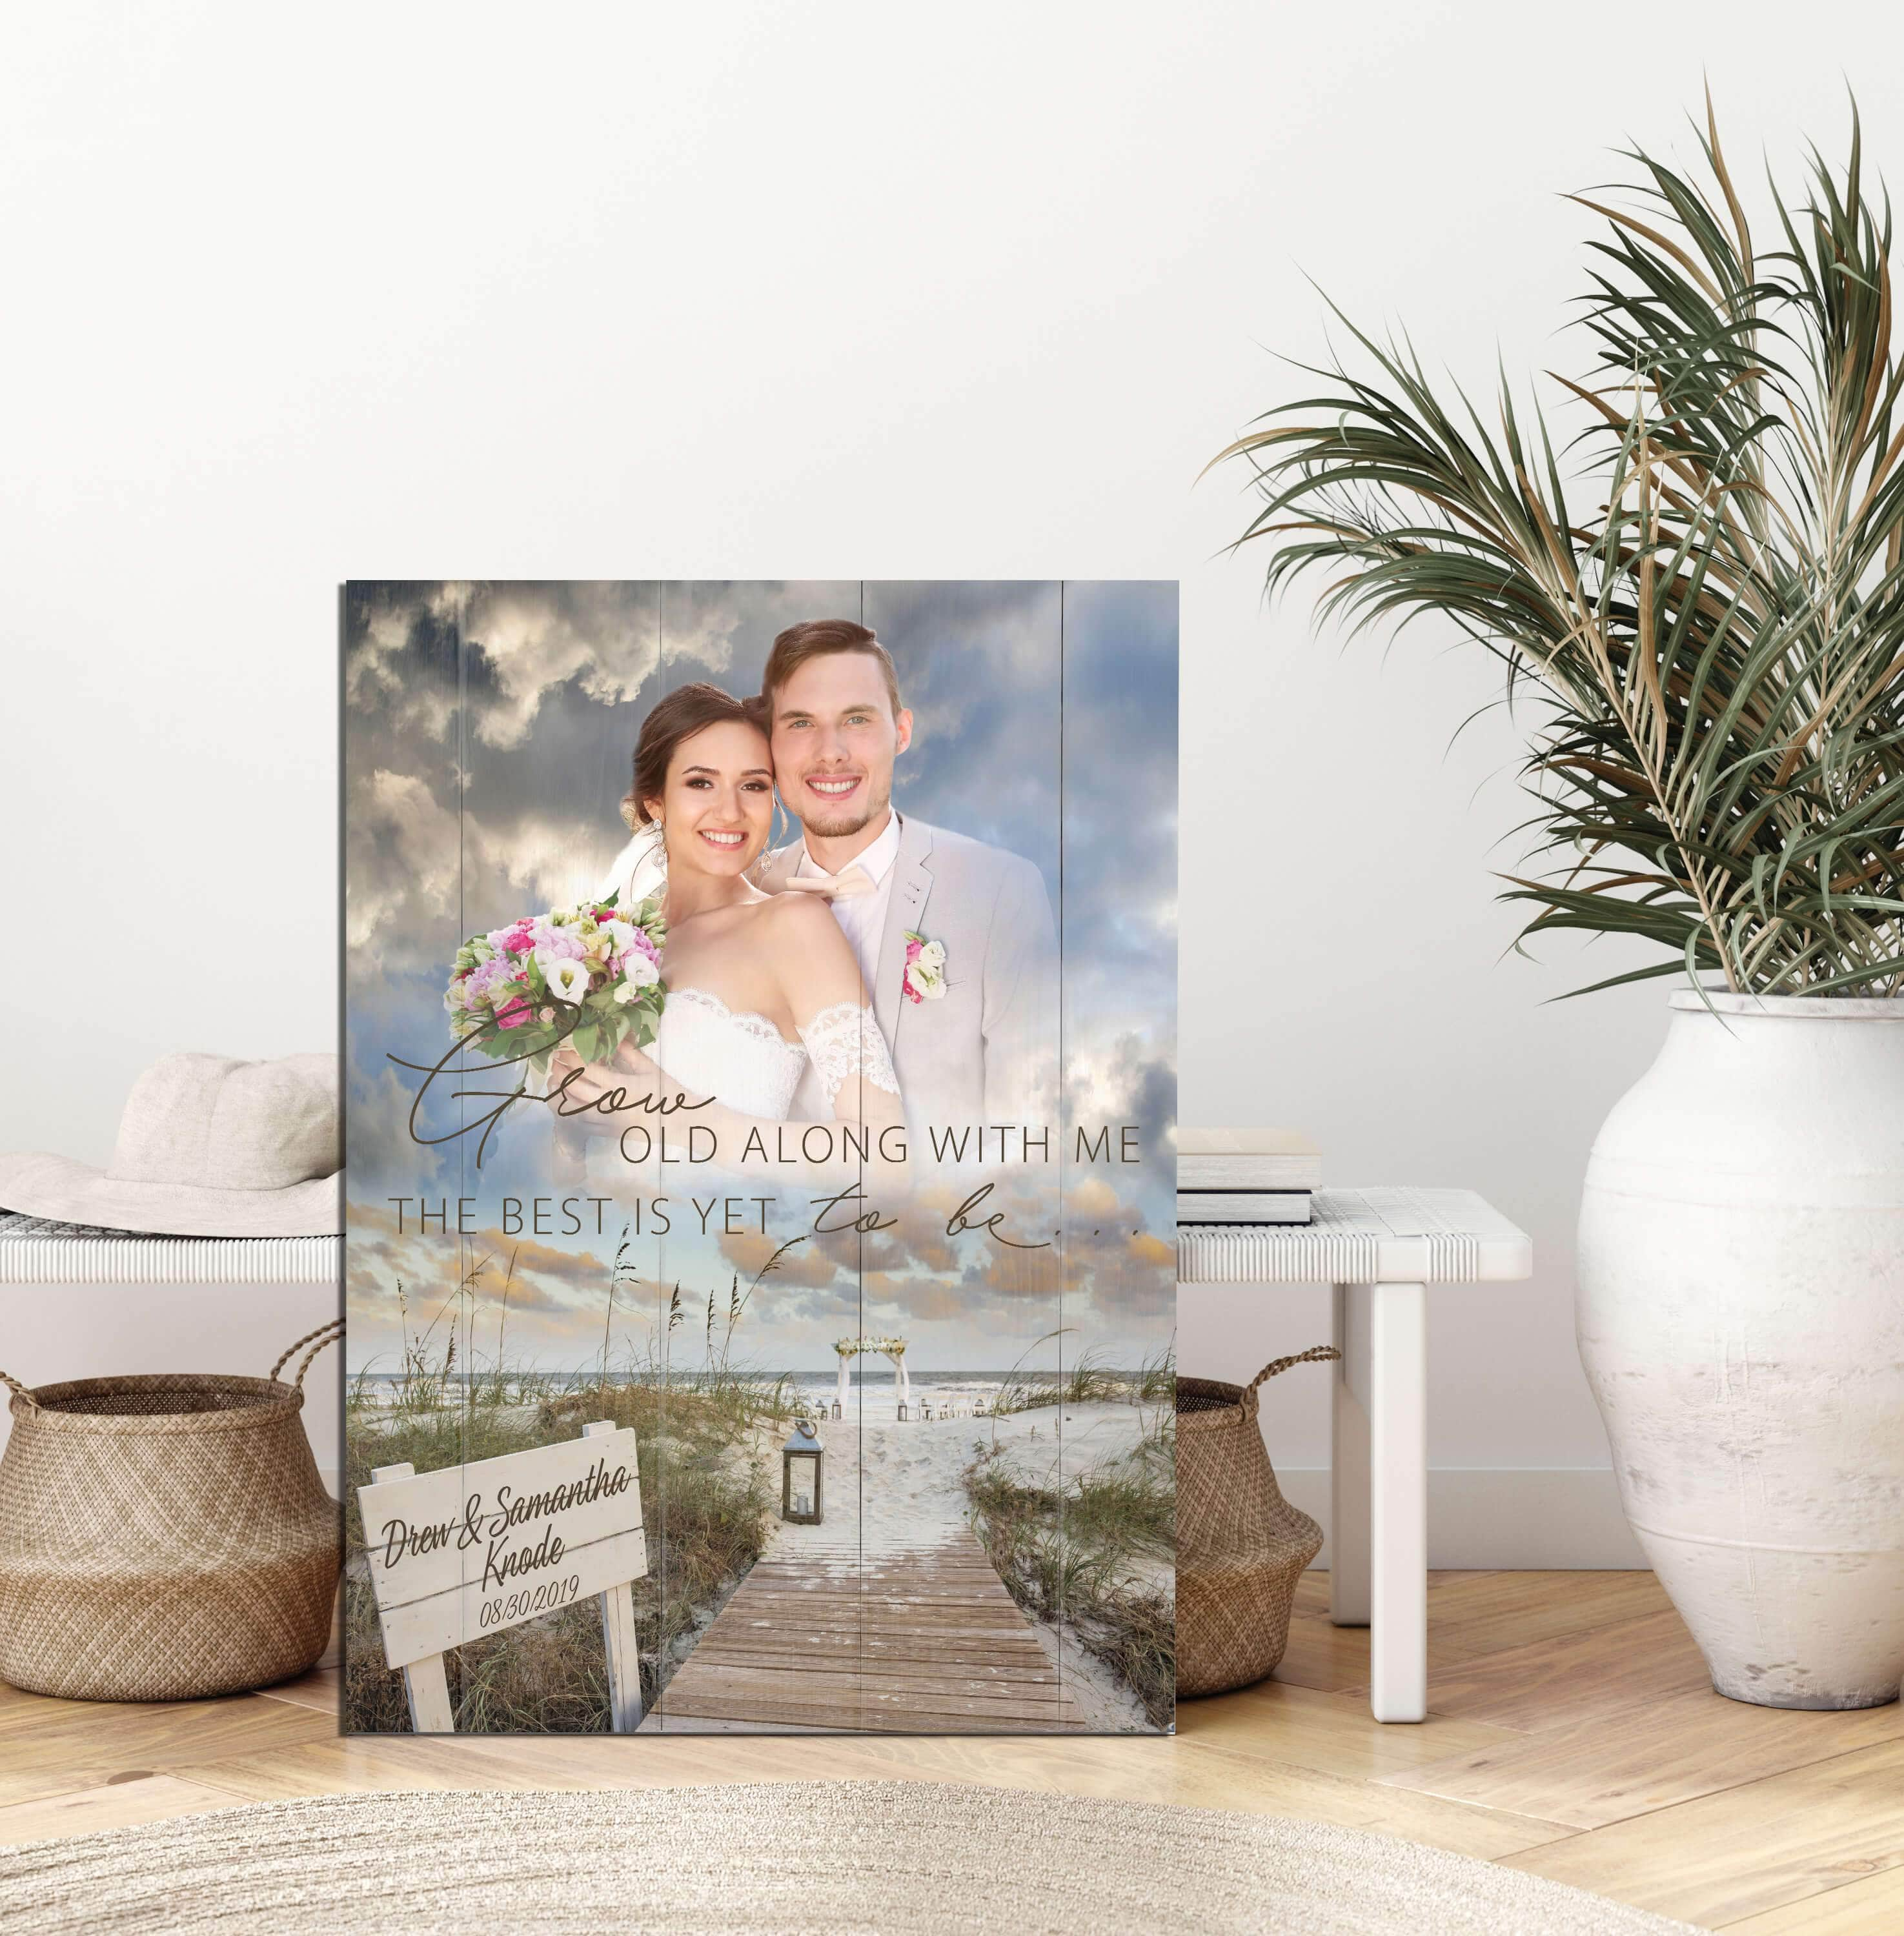 Grow Old With Me The Best Is Yet To Be - Beach Wedding - Custom Photo Upload